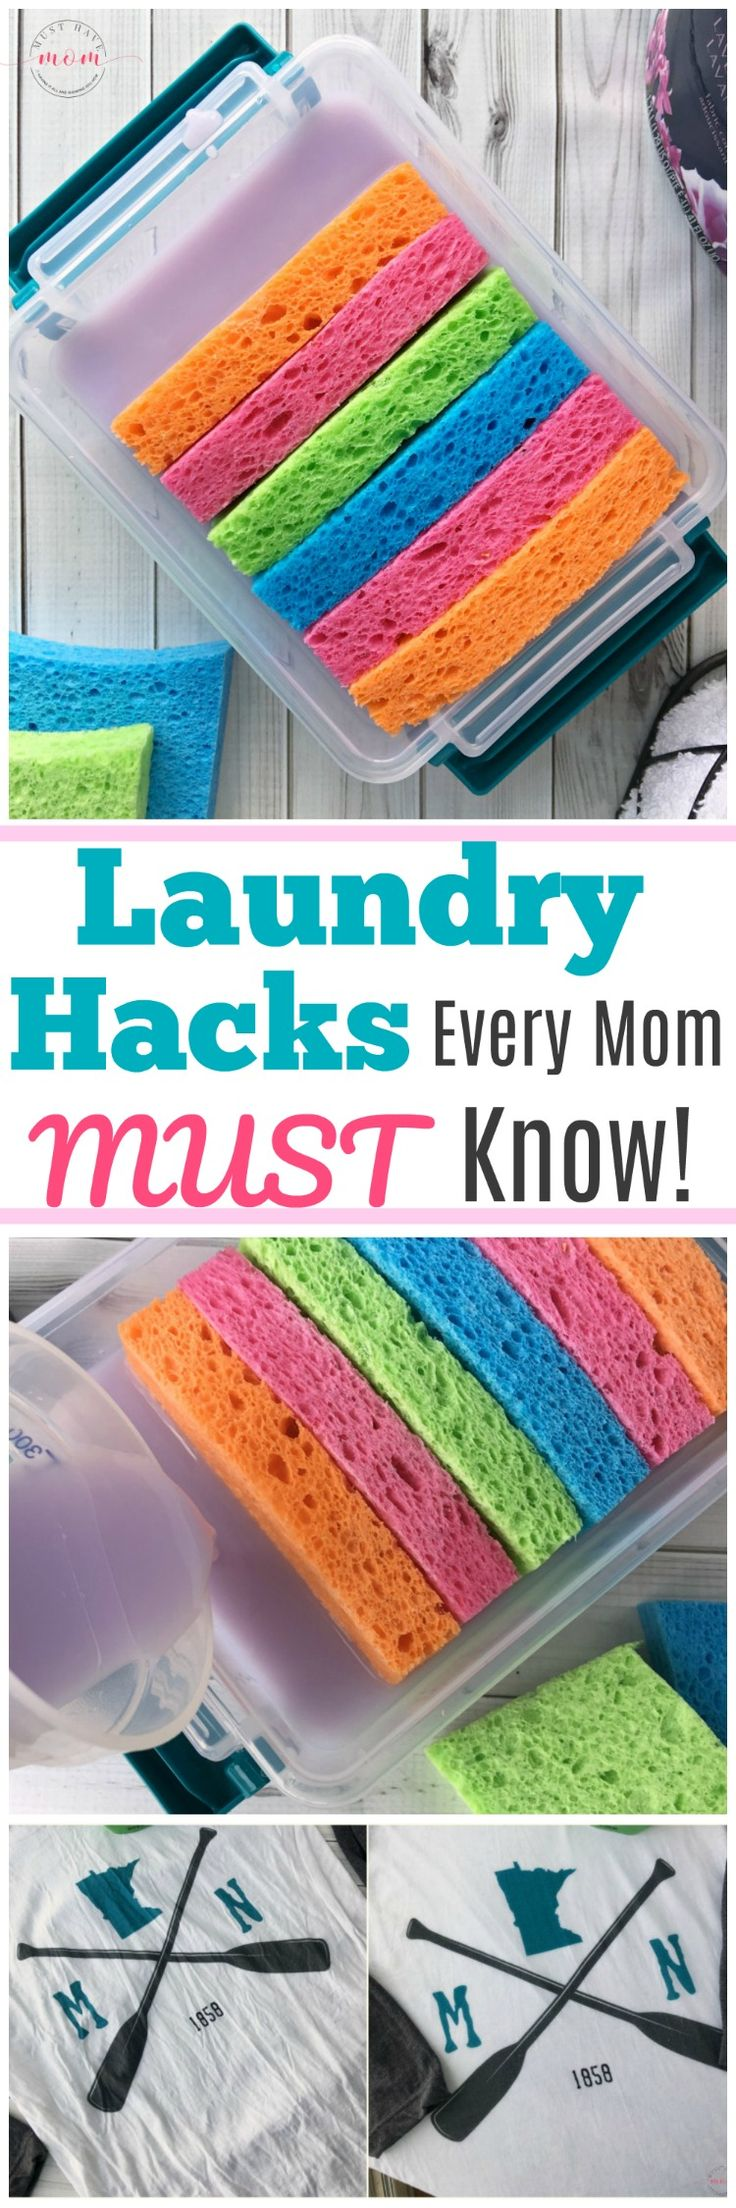 Laundry hacks every mom MUST know! How to get wrinkles out of clothes fast + mak...